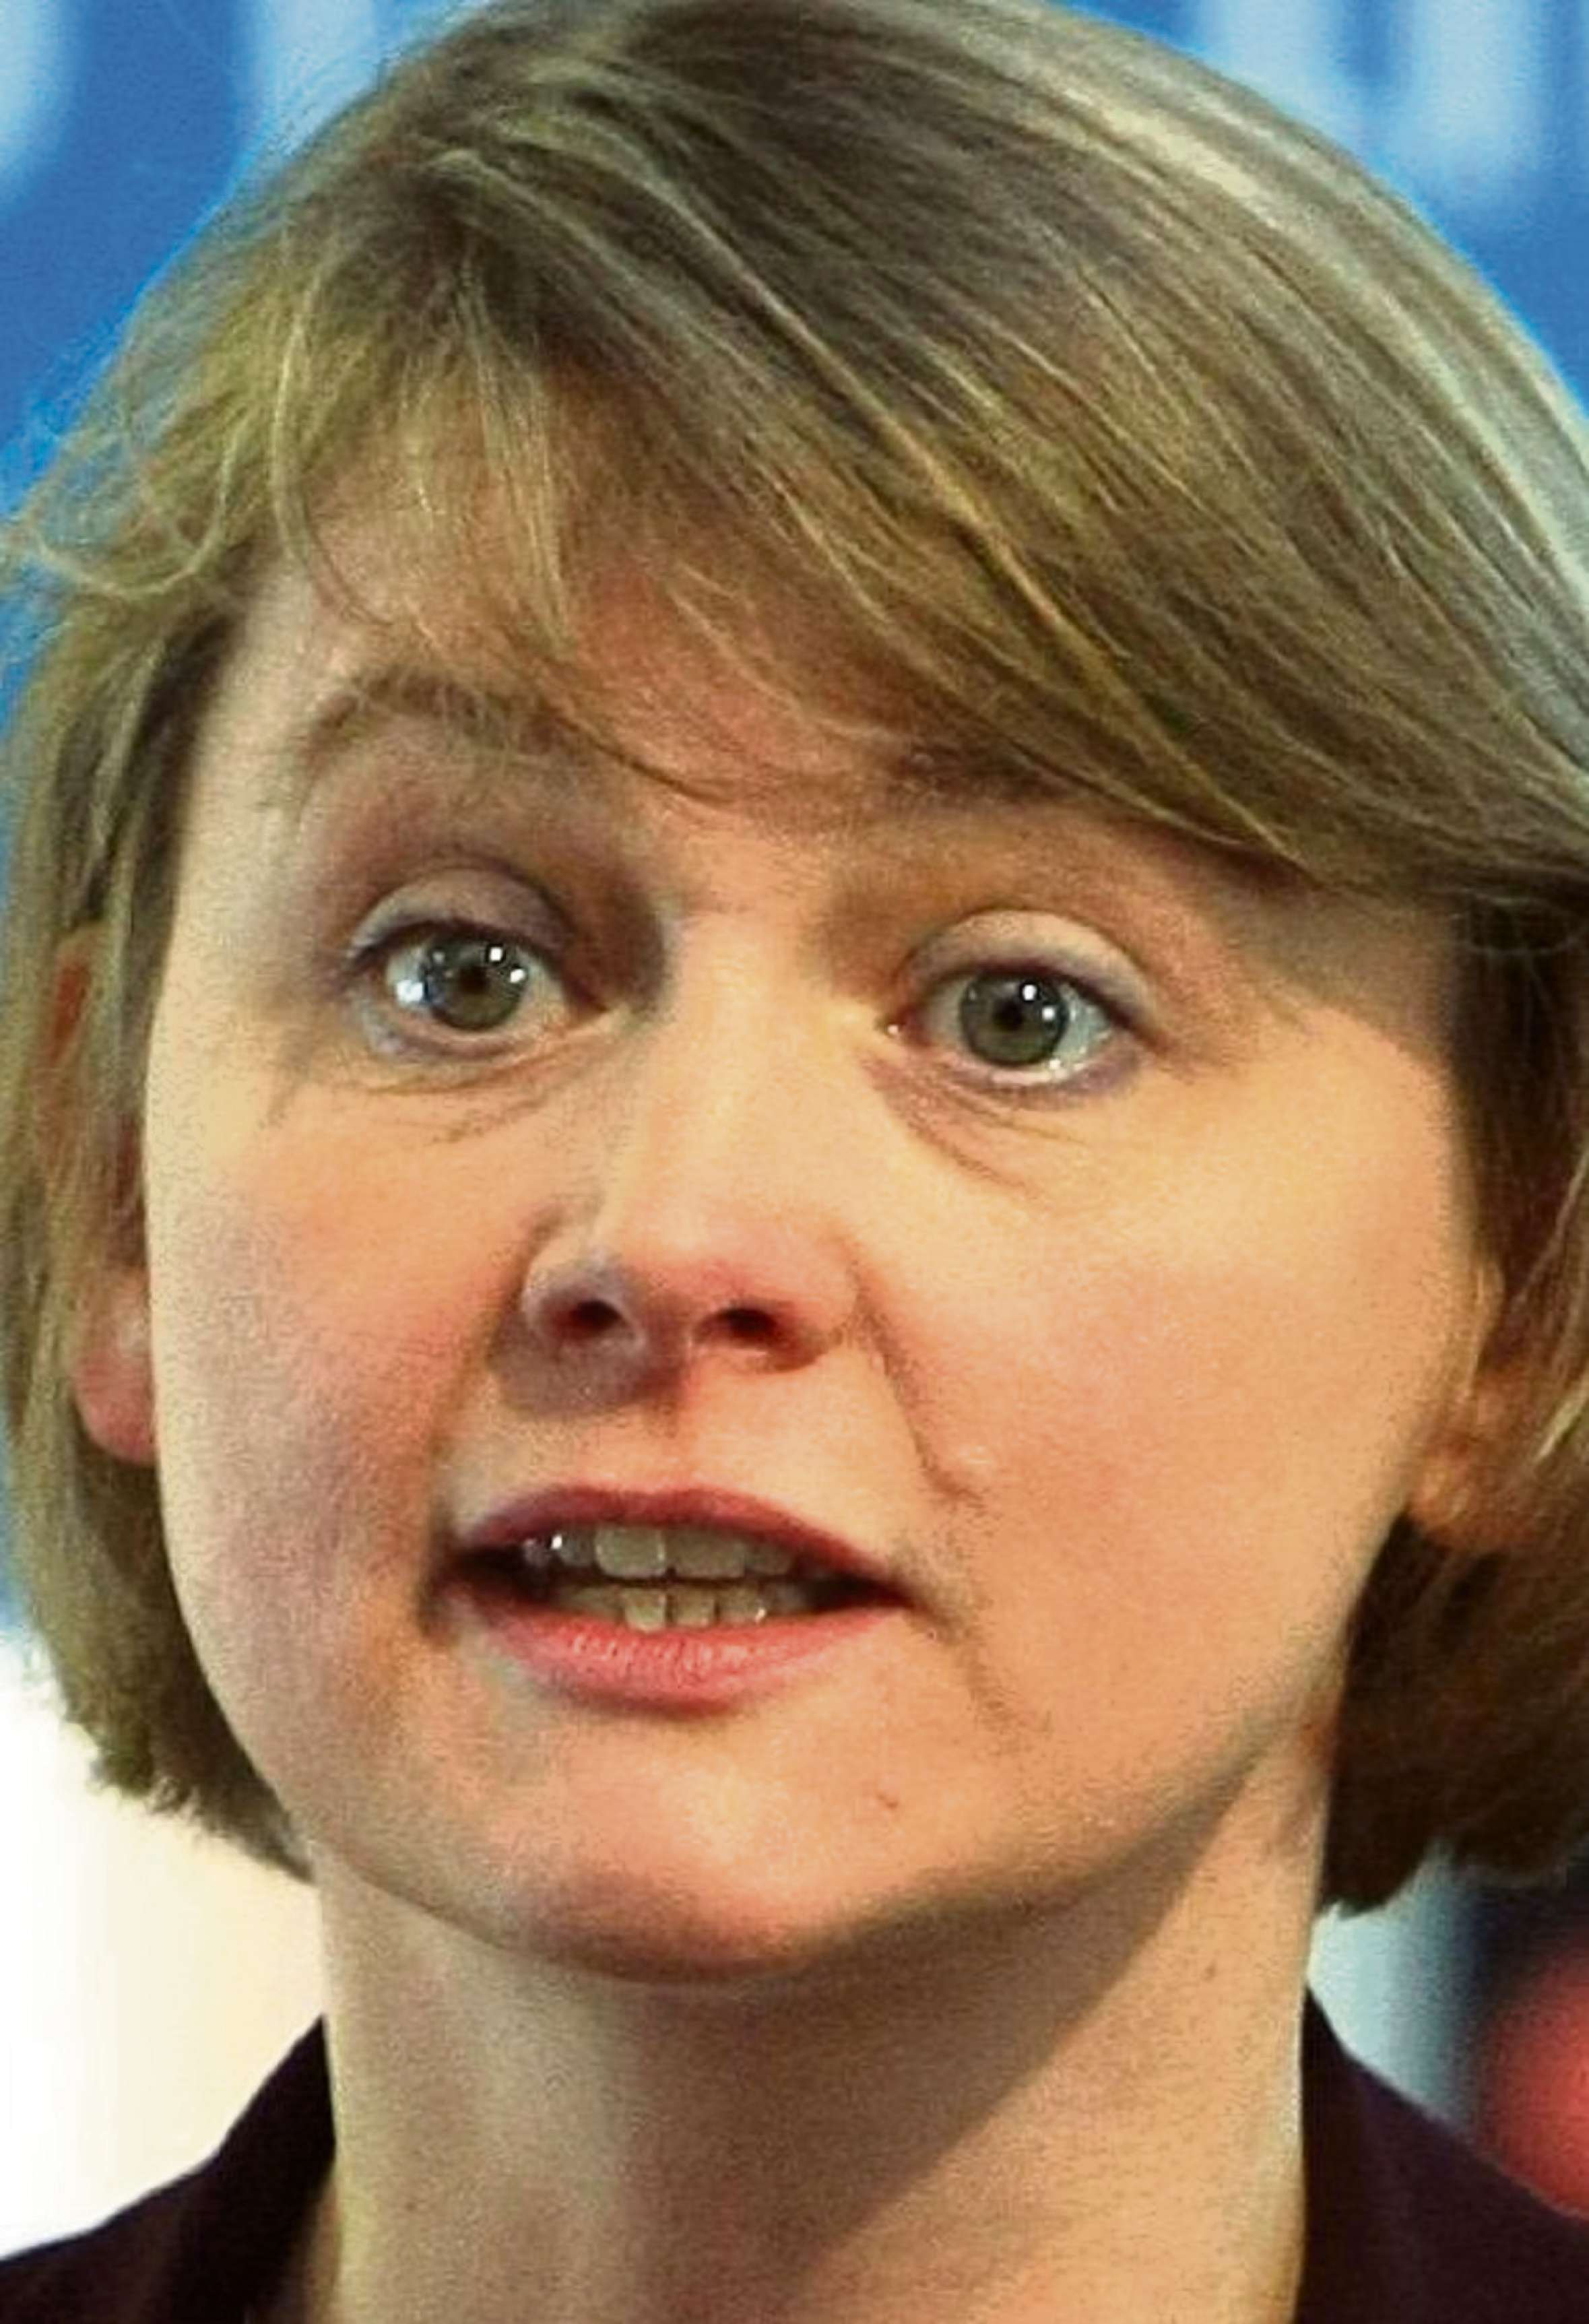 'DEEPY TROUBLING': Yvette Cooper has raised the alarm over barring statistics